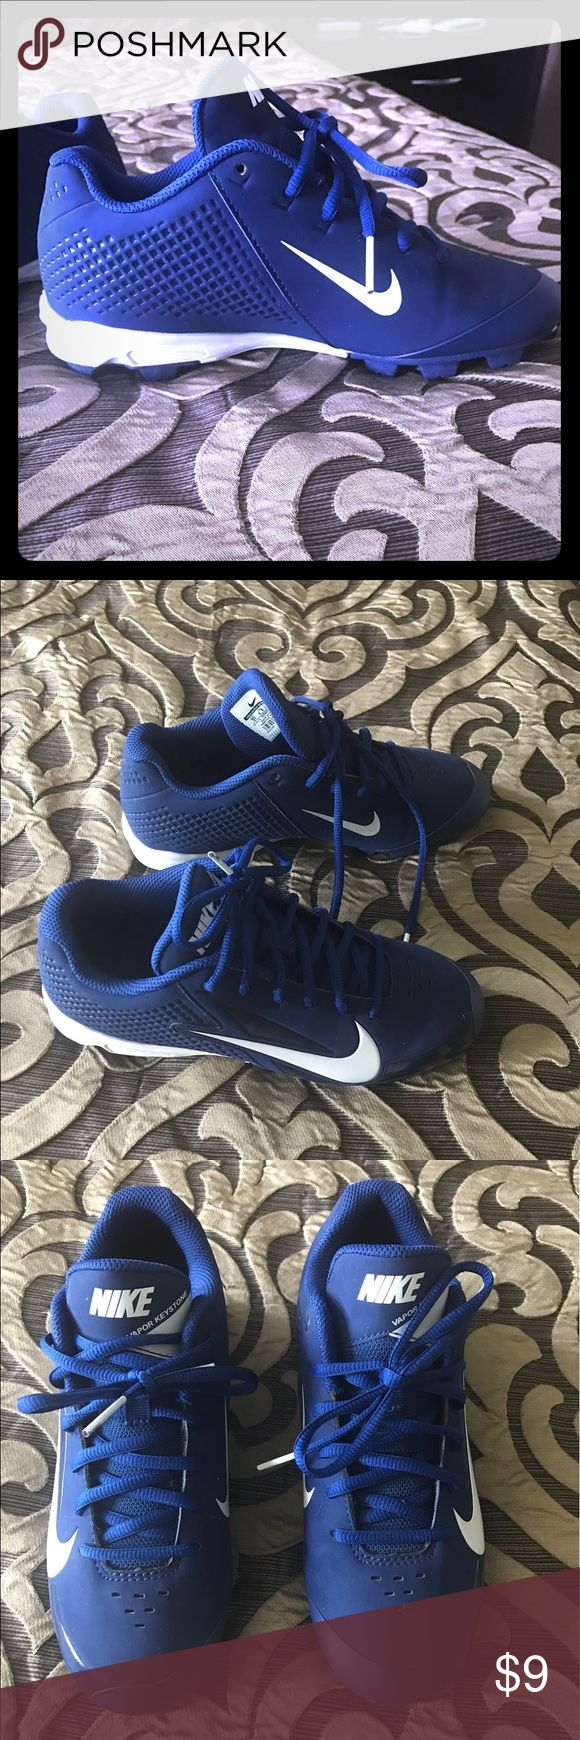 Baseball cleats Baseball cleats Vapore Keystone youth cleats. Blue and white, size 5 youth. Like new. Nike Shoes Athletic Shoes